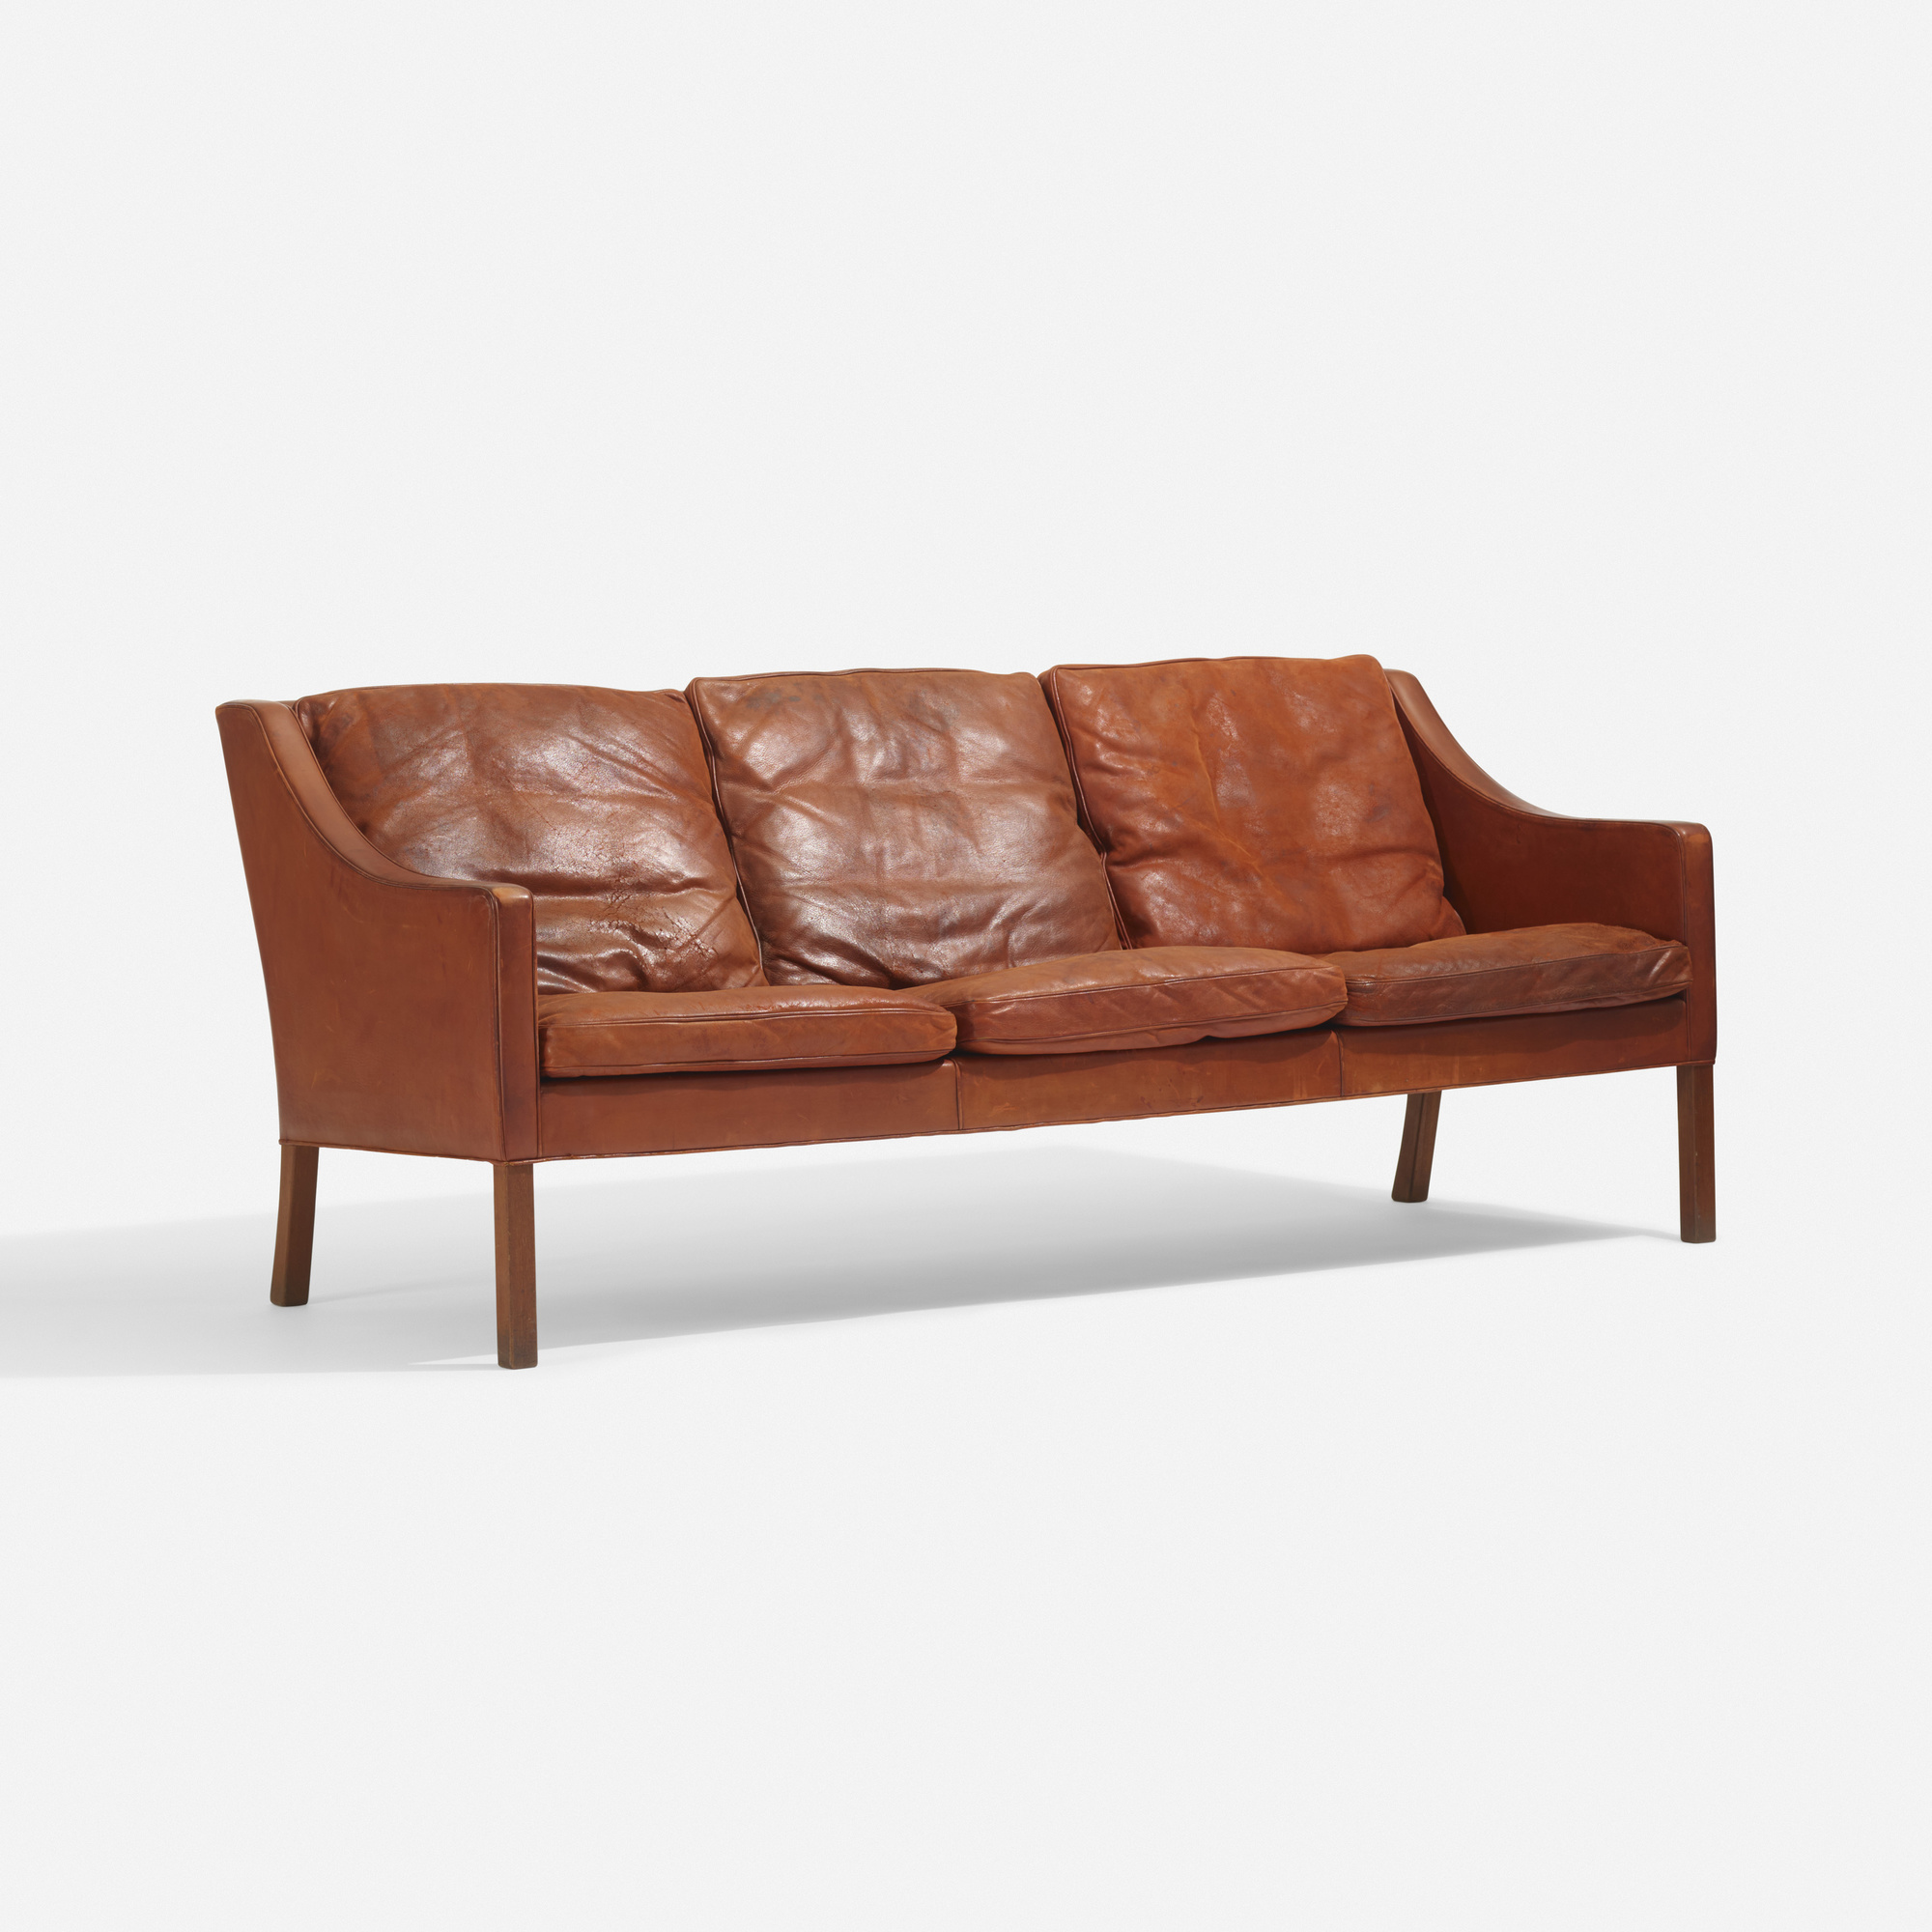 borge mogensen sofa model 2209 mid century tufted linen sleeper convertible by madison home usa vintage black leather